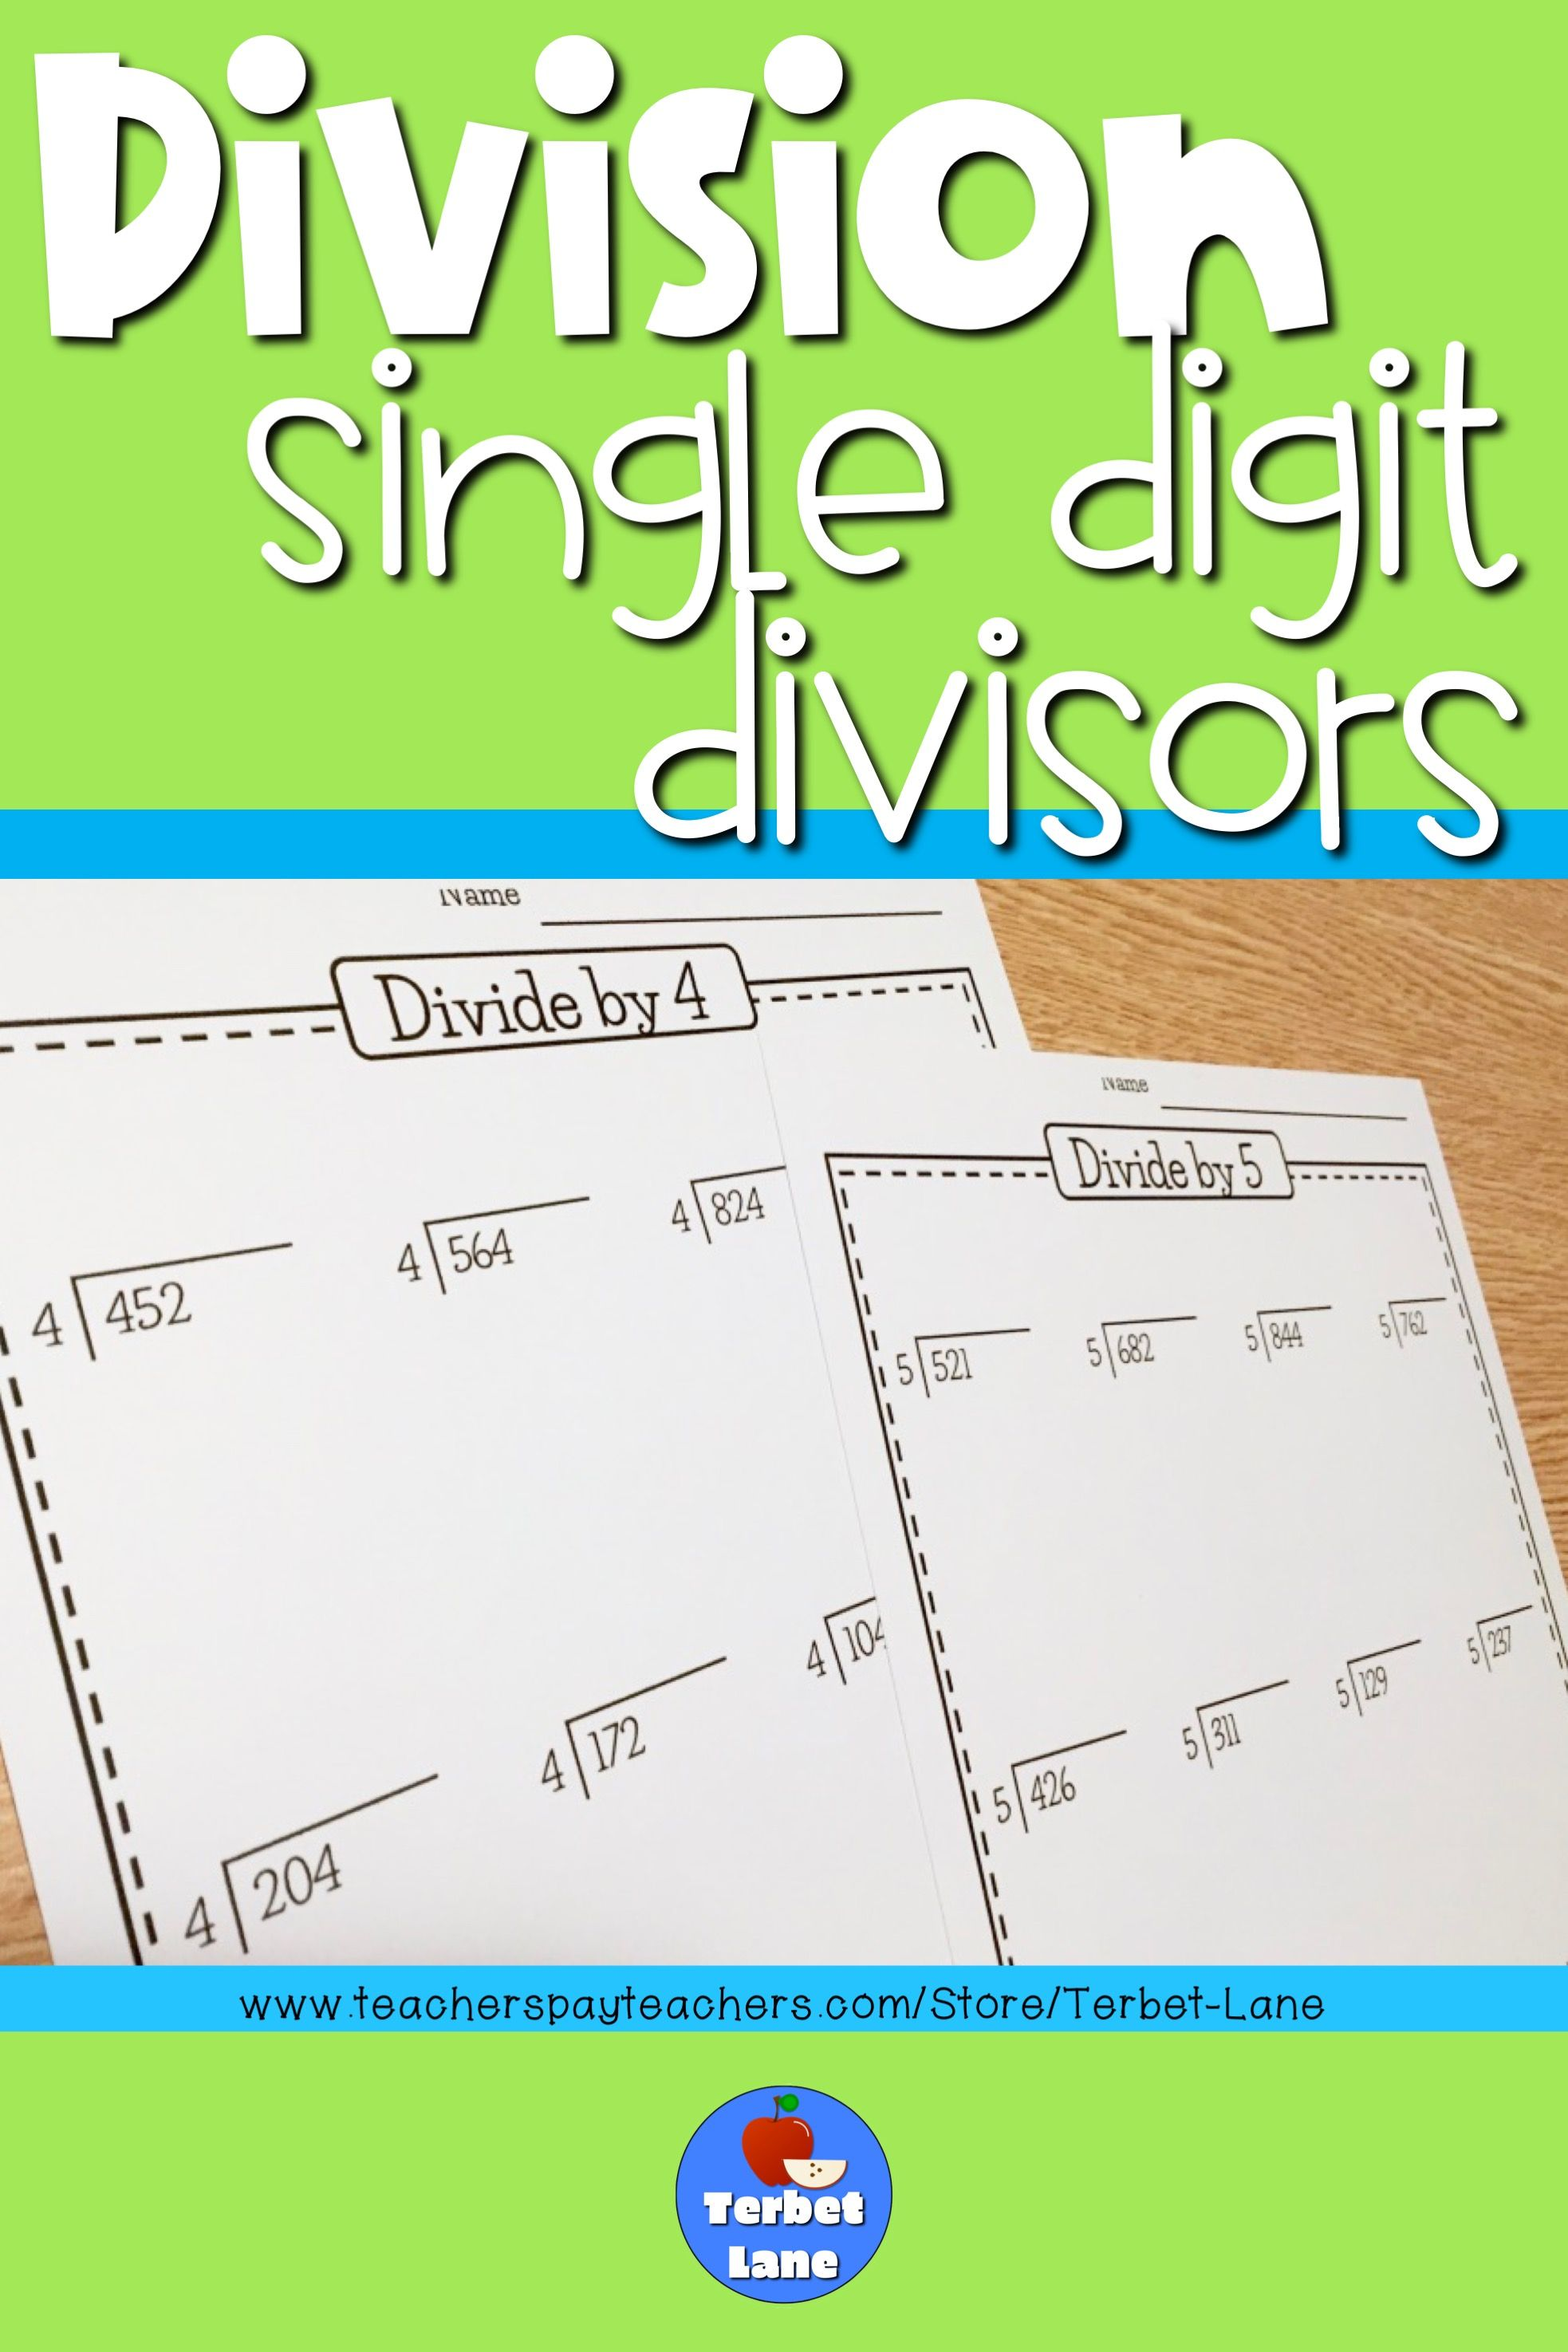 Division Worksheets With Single Digit Divisors With